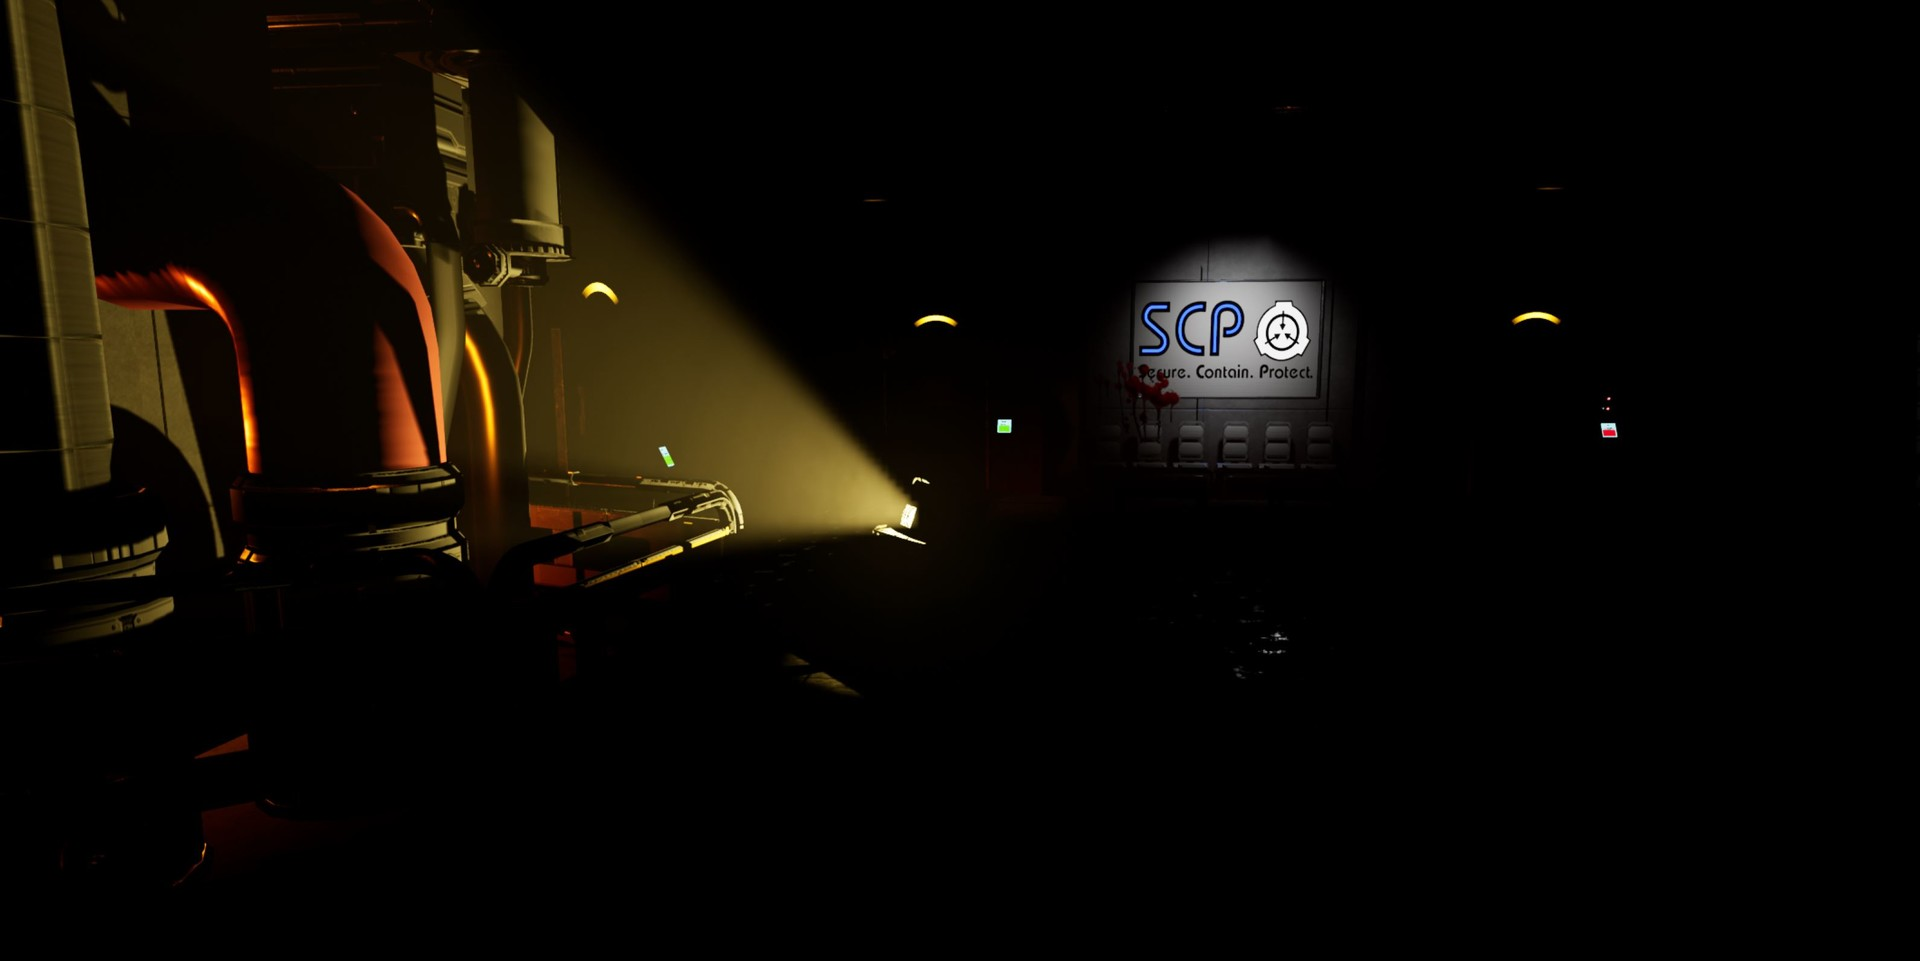 SCP: Blackout - SteamStat ru